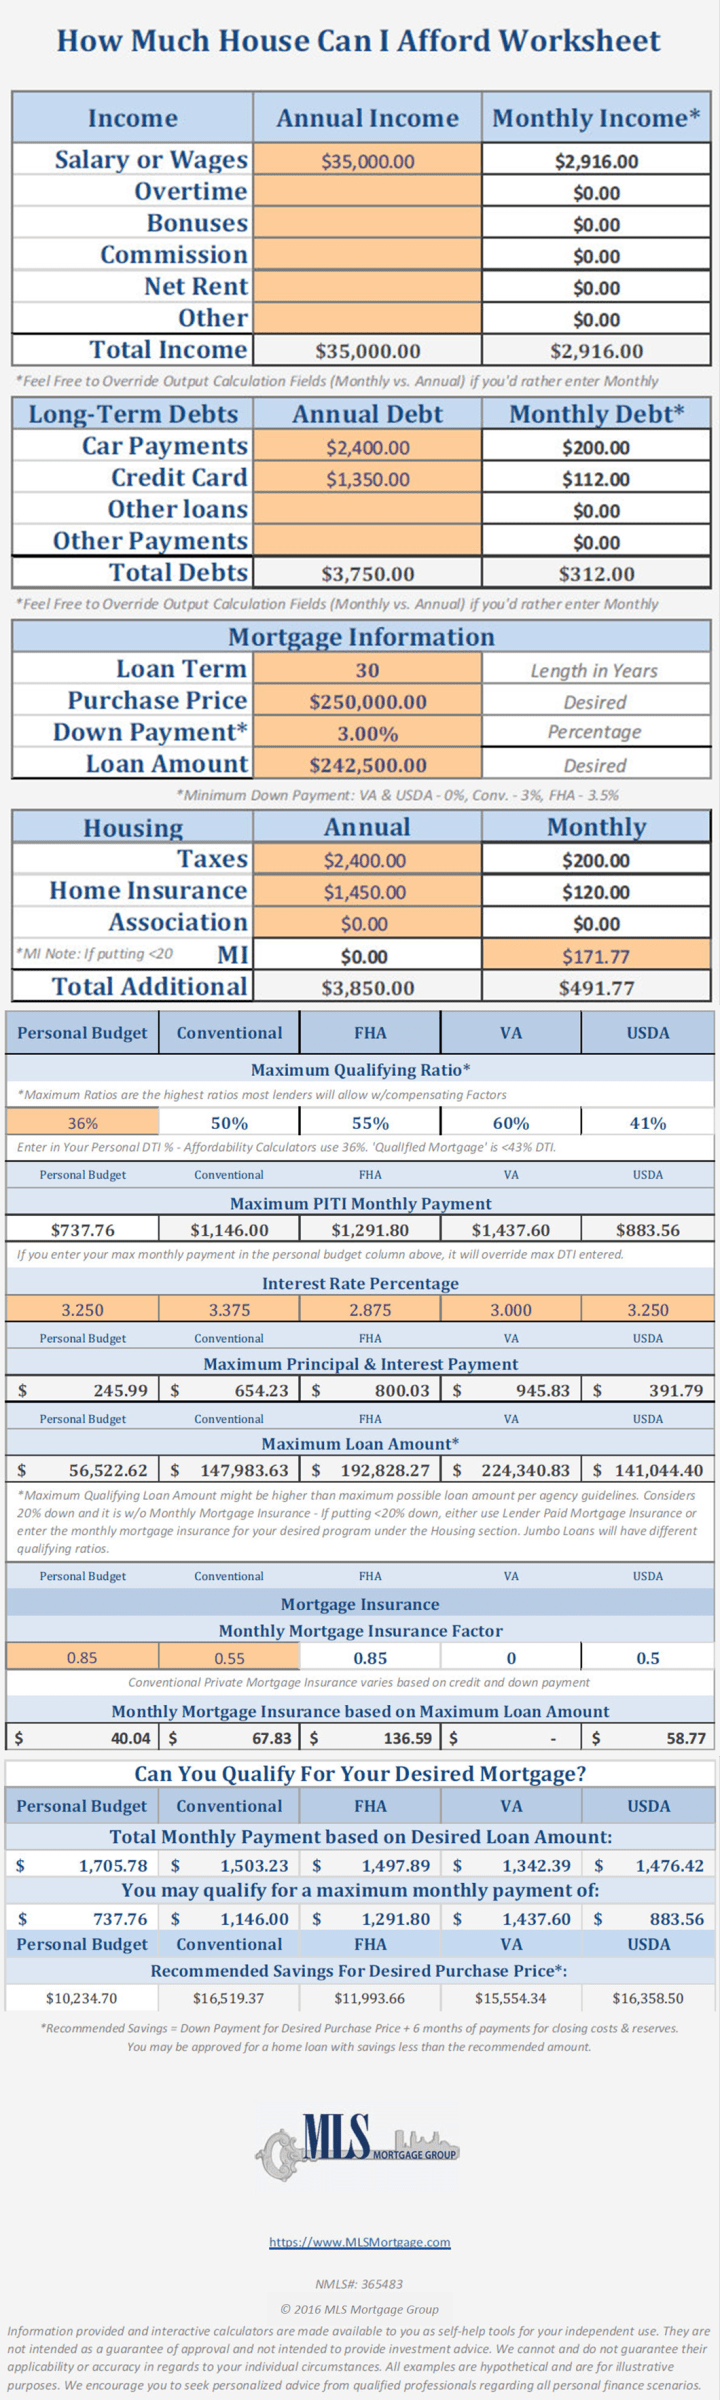 How Much House Can I Afford Insider Tips And Home Affordability Calculator Buying First Home Home Buying Process Home Buying Tips